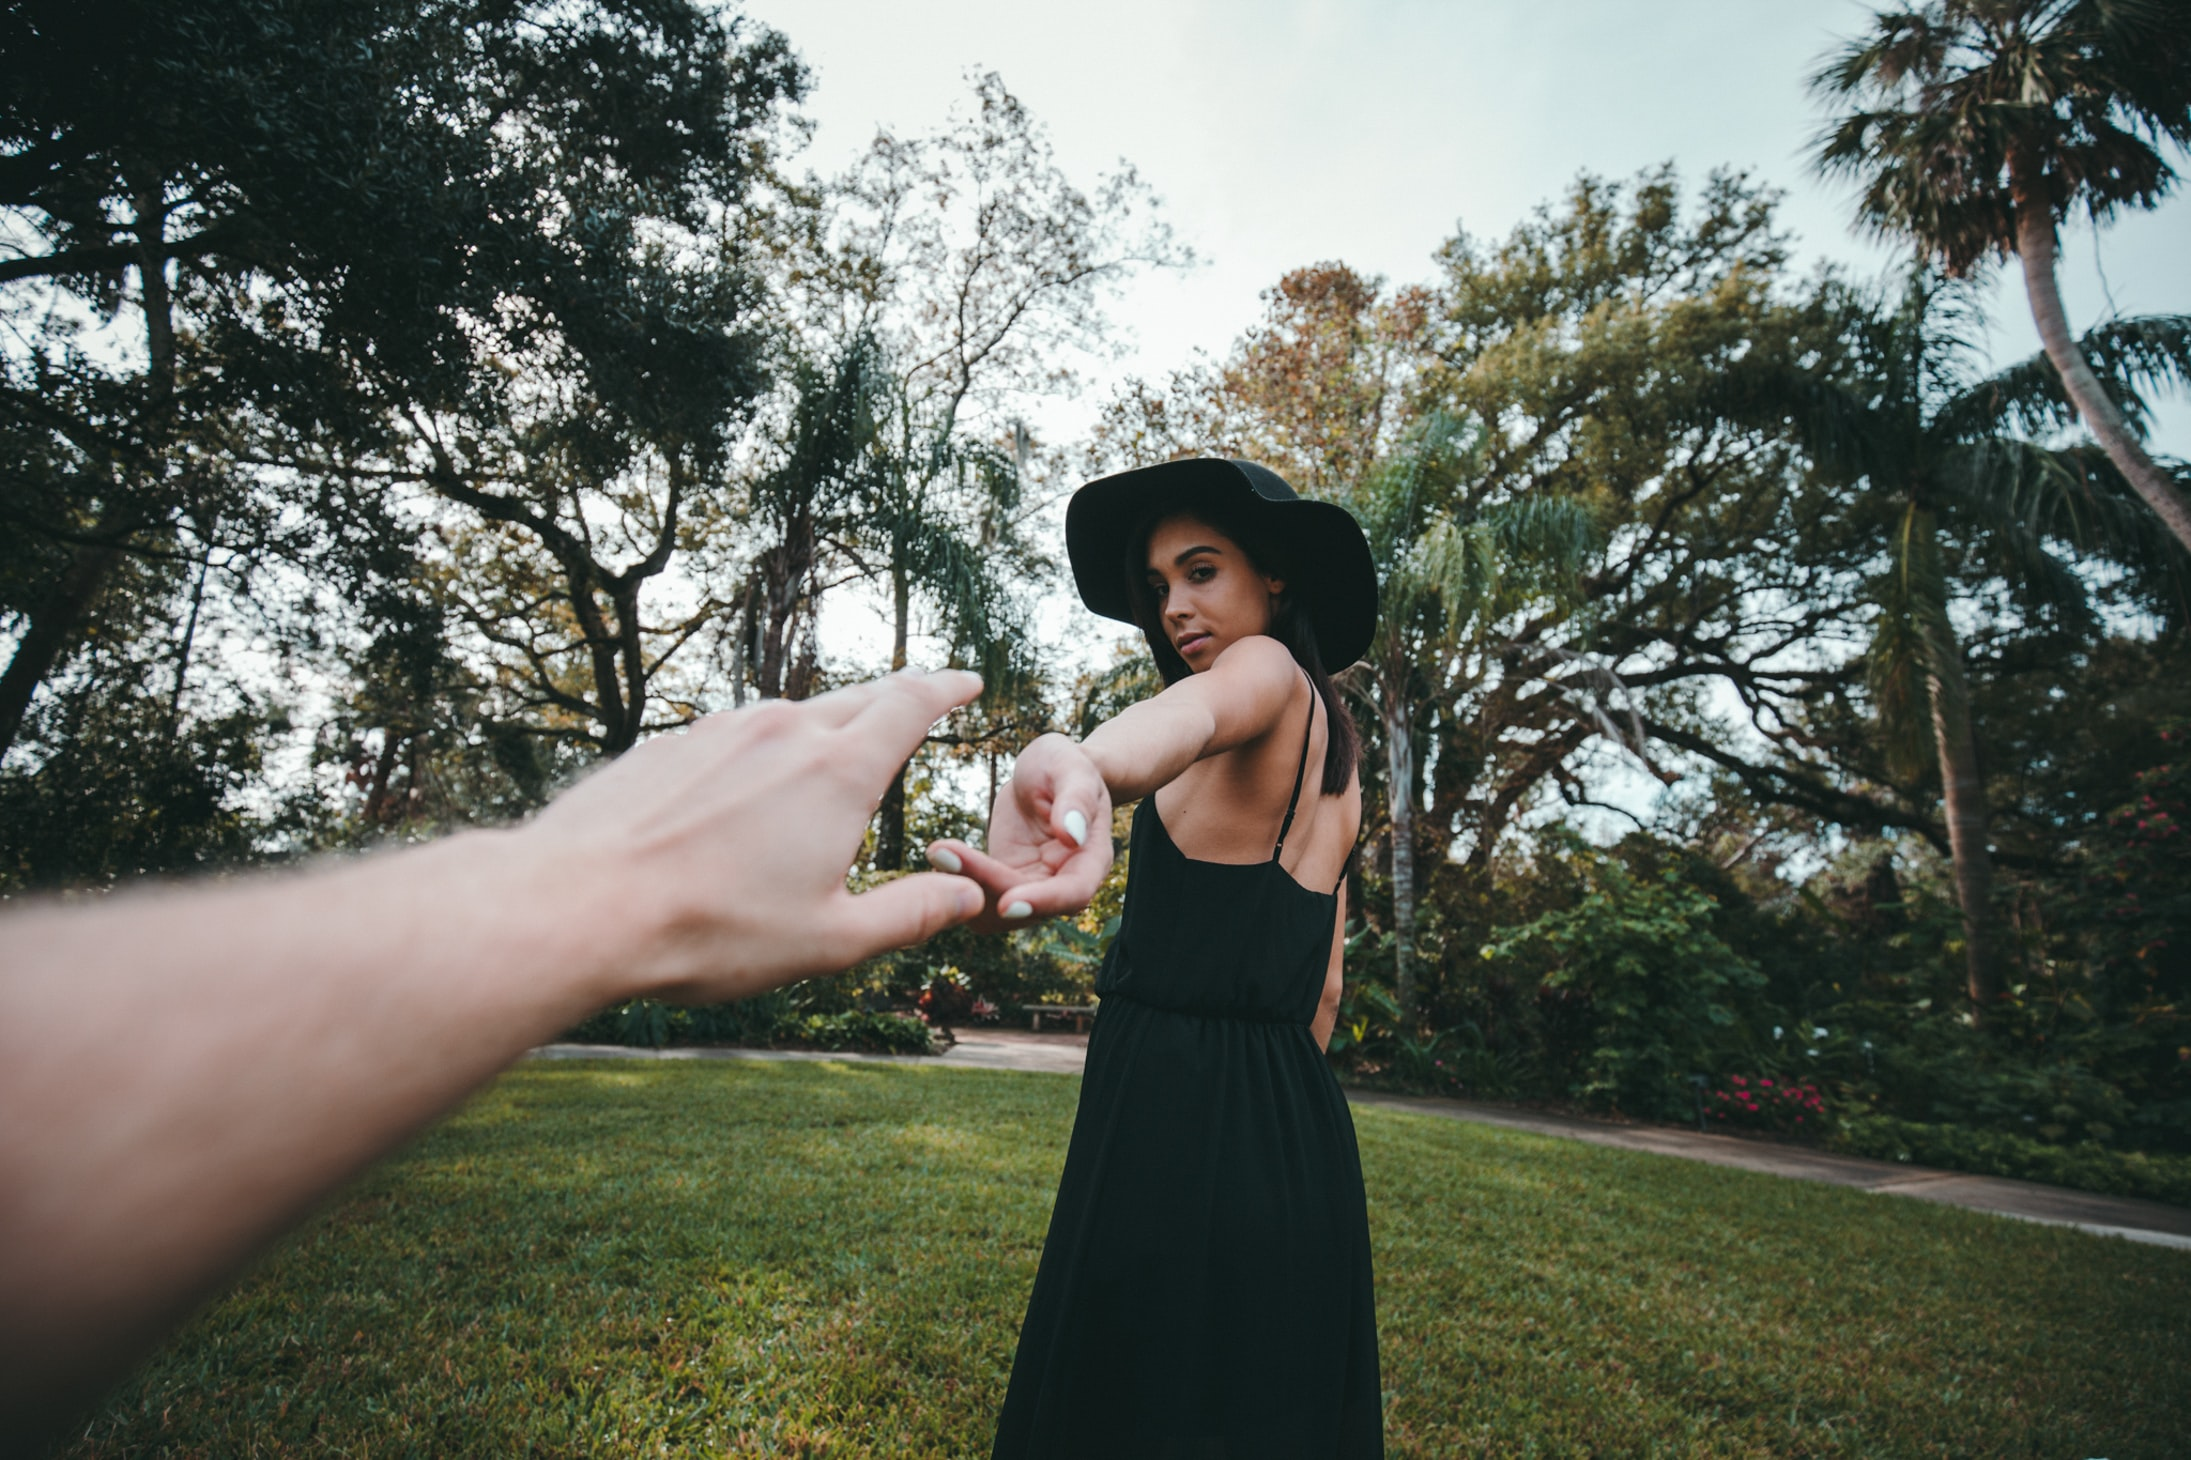 person reaching woman's hand wearing black spaghetti strap dress standing on green grass